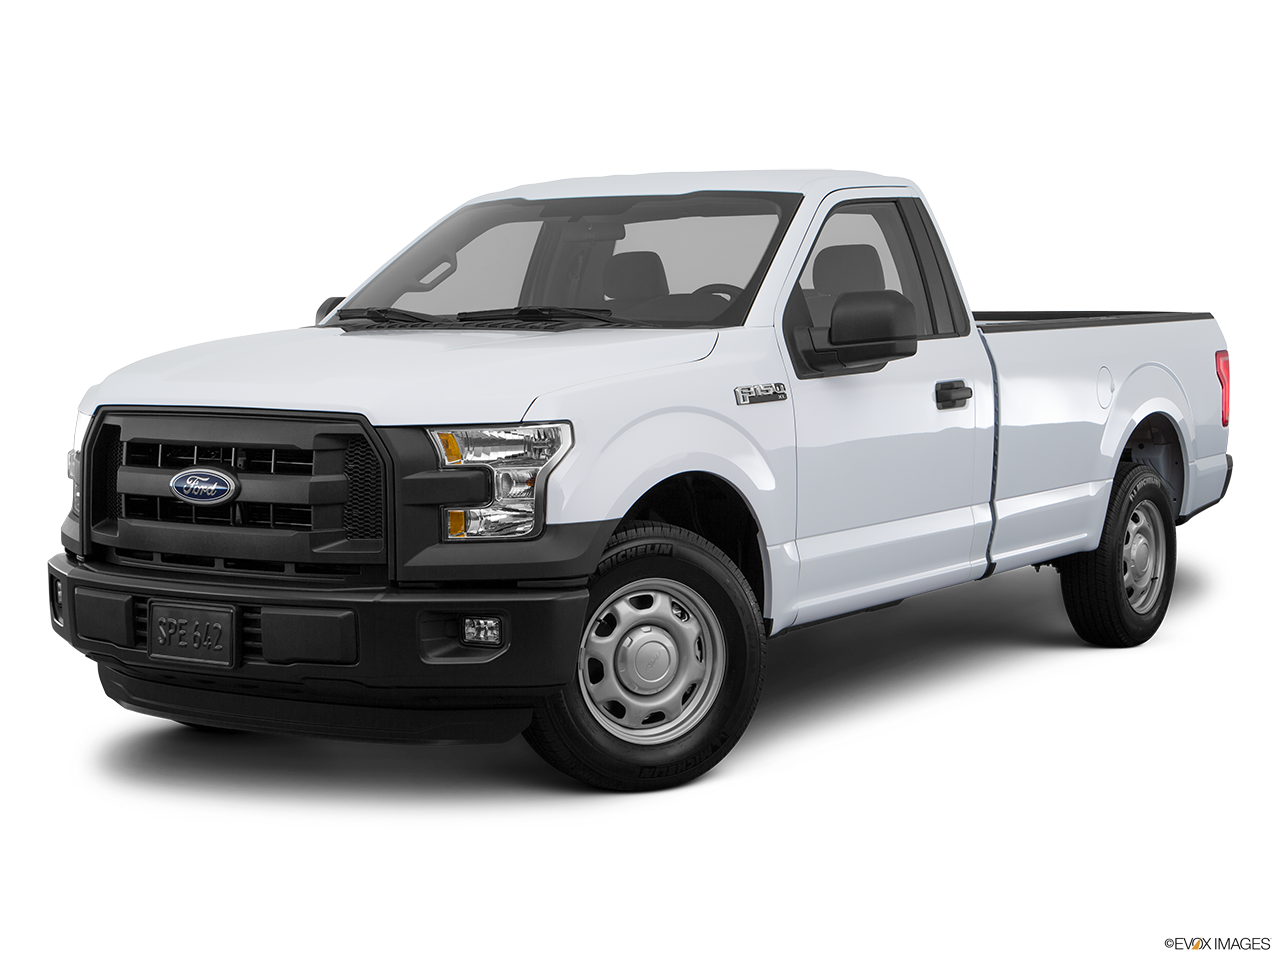 Test Drive A 2016 Ford F-150 at Franklin Ford in Franklin